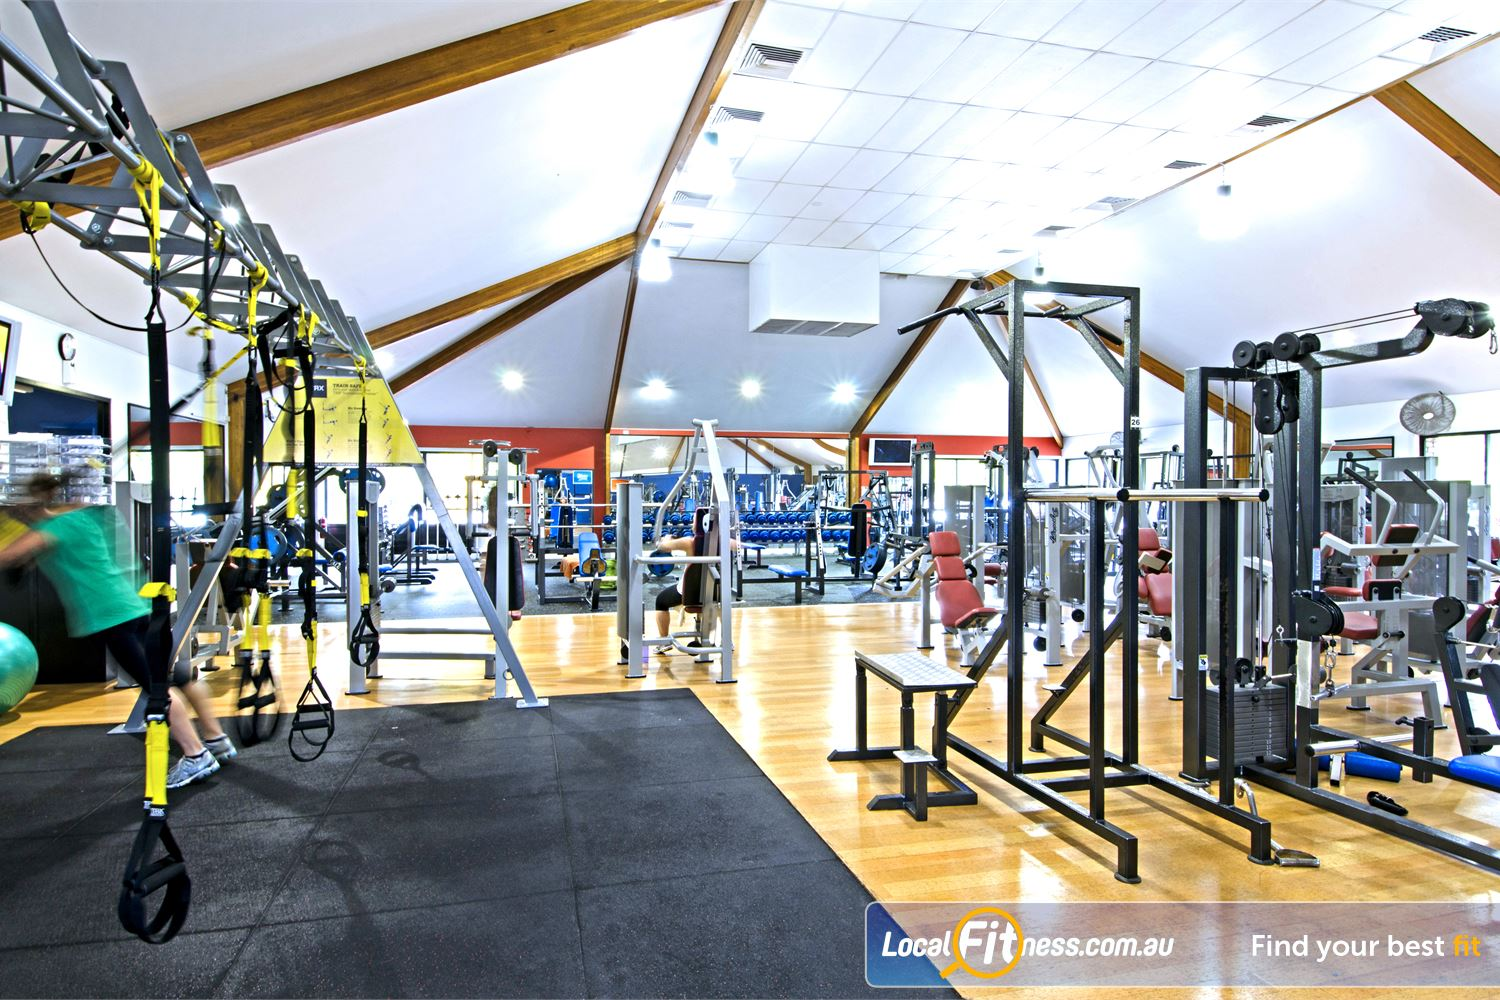 Goodlife Health Clubs Near Bridgeman Downs The Goodlife Carseldine gym includes a functional training area.